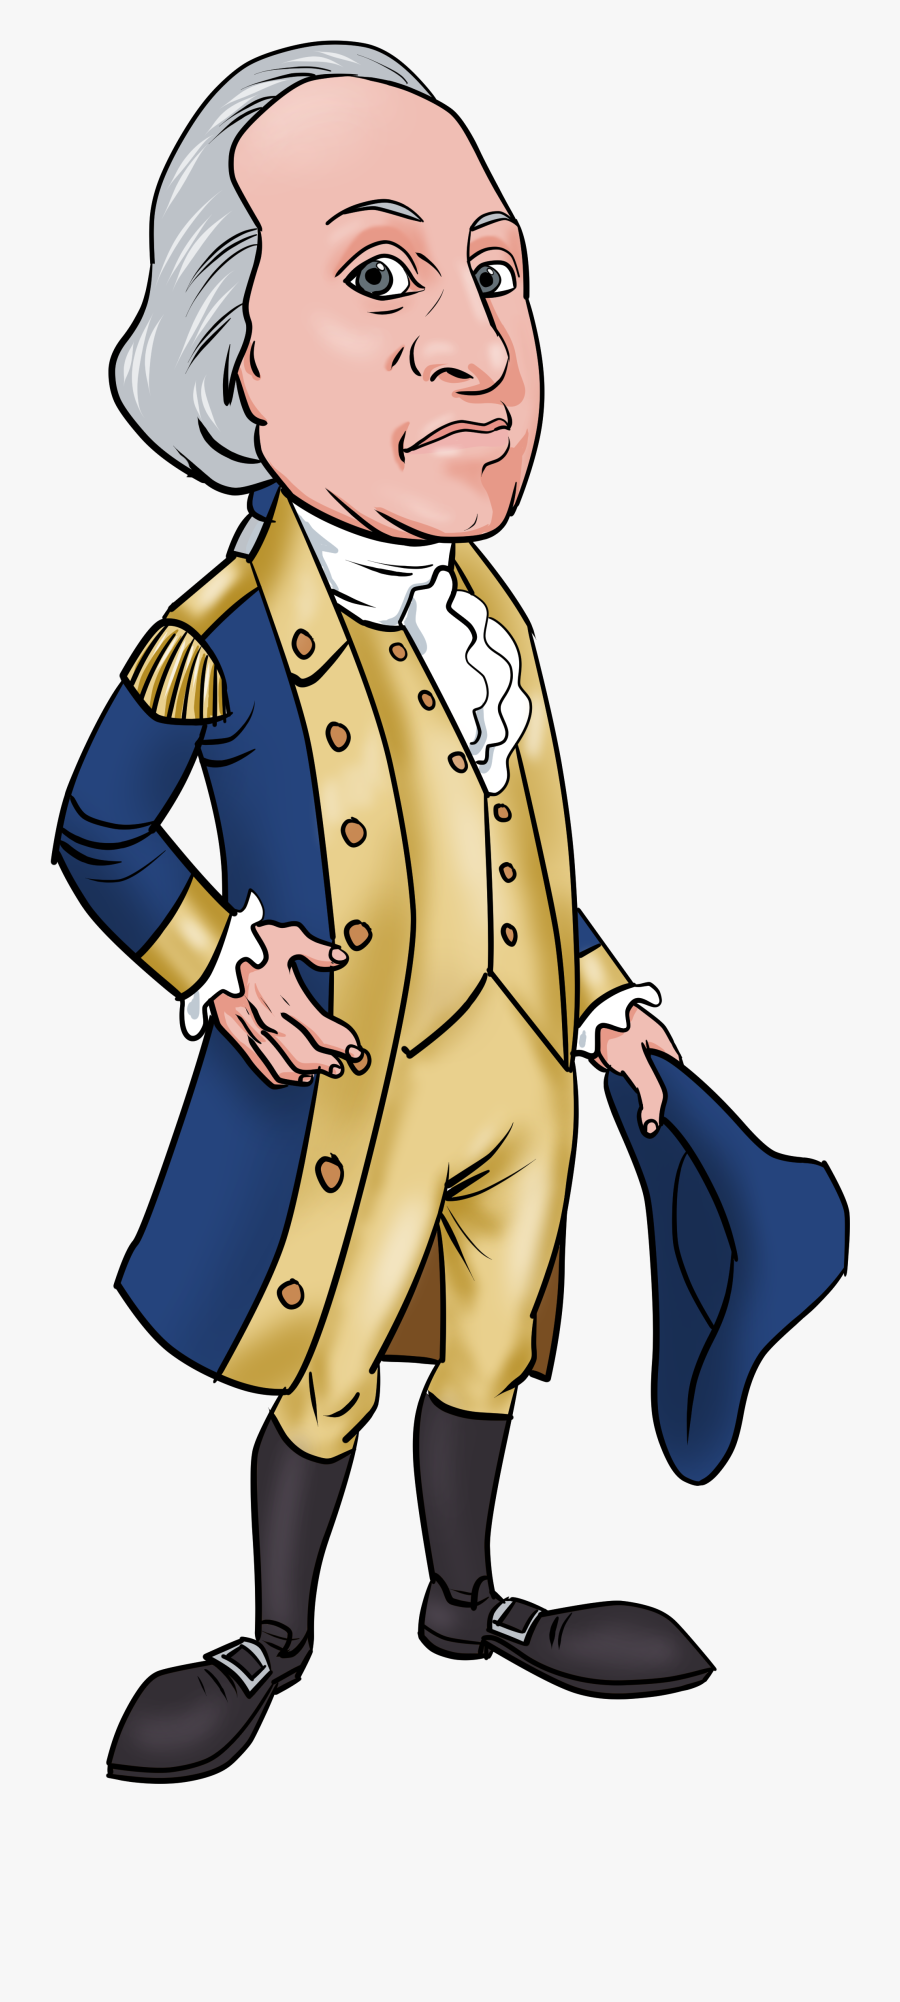 Transparent Chavo Animado Png - Cartoon George Washington Clipart, Transparent Clipart